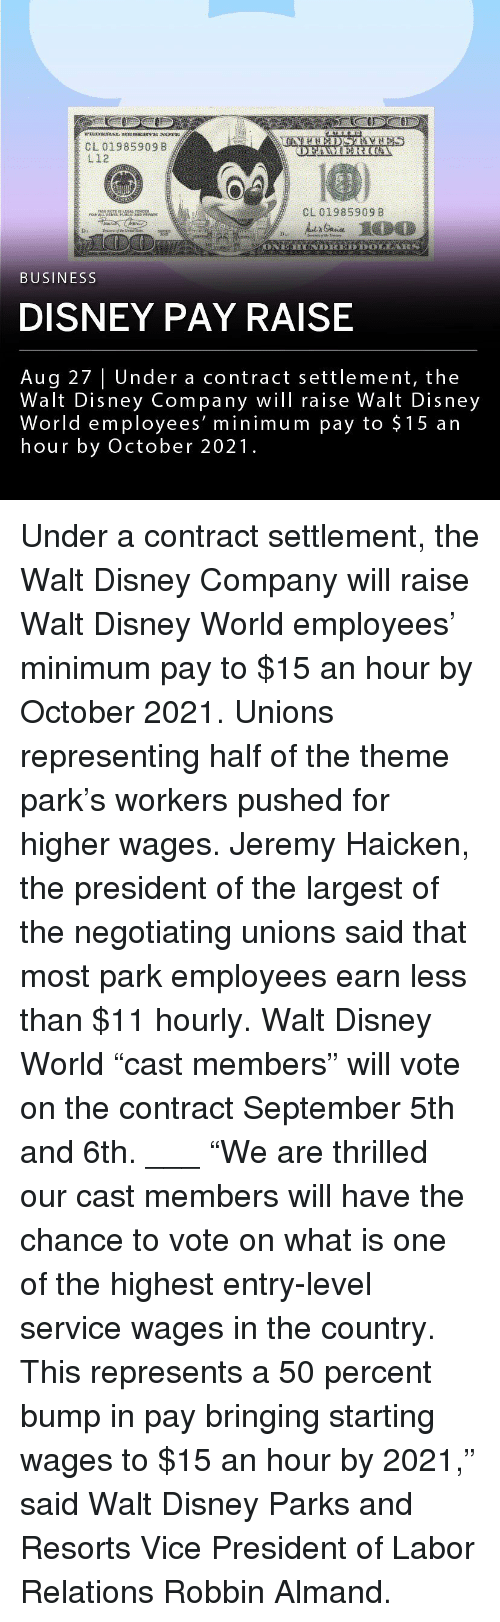 "Disney, Disney World, and Memes: CL 01985909 B  L12  CL 01985909 8  BUSINESS  DISNEY PAY RAISE  Aug 27 | Under a contract settlement, the  Walt Disney Company wil raise Walt Disney  World employees' minimum pay to $15 an  hour by October 2021. Under a contract settlement, the Walt Disney Company will raise Walt Disney World employees' minimum pay to $15 an hour by October 2021. Unions representing half of the theme park's workers pushed for higher wages. Jeremy Haicken, the president of the largest of the negotiating unions said that most park employees earn less than $11 hourly. Walt Disney World ""cast members"" will vote on the contract September 5th and 6th. ___ ""We are thrilled our cast members will have the chance to vote on what is one of the highest entry-level service wages in the country. This represents a 50 percent bump in pay bringing starting wages to $15 an hour by 2021,"" said Walt Disney Parks and Resorts Vice President of Labor Relations Robbin Almand."